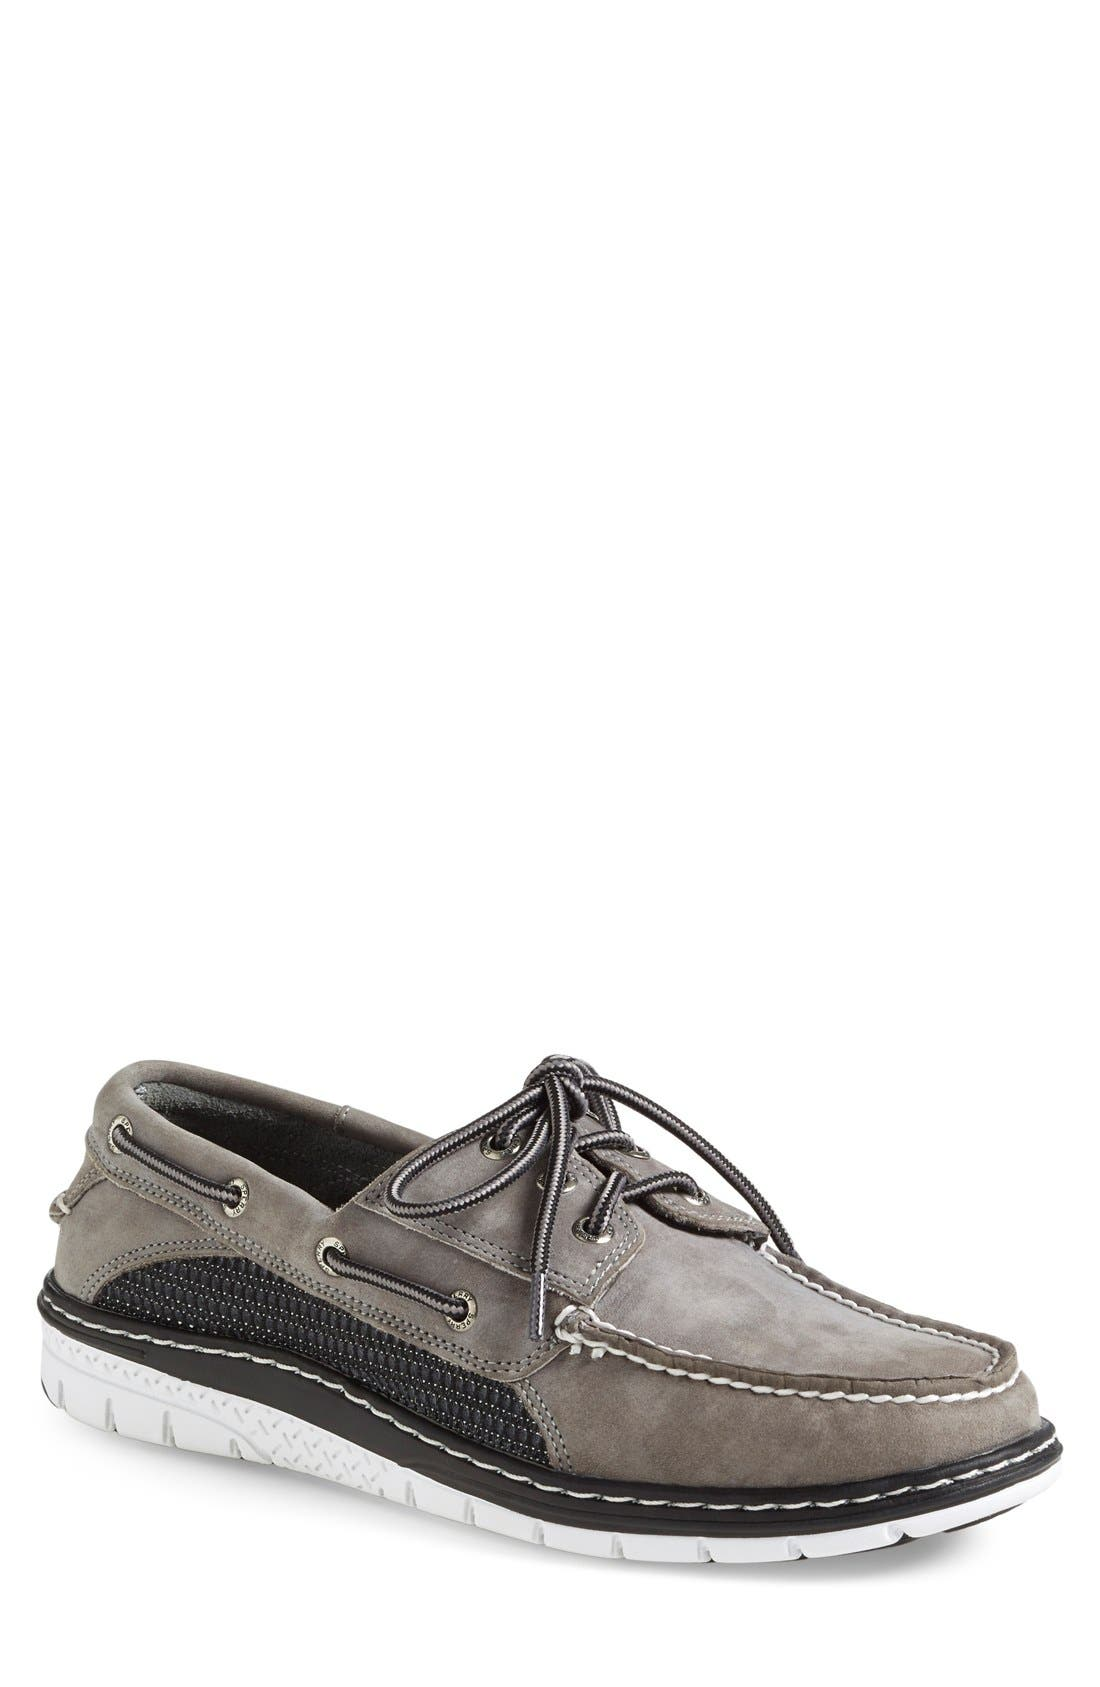 'Billfish Ultralite' Boat Shoe,                         Main,                         color, Grey/ Black Leather